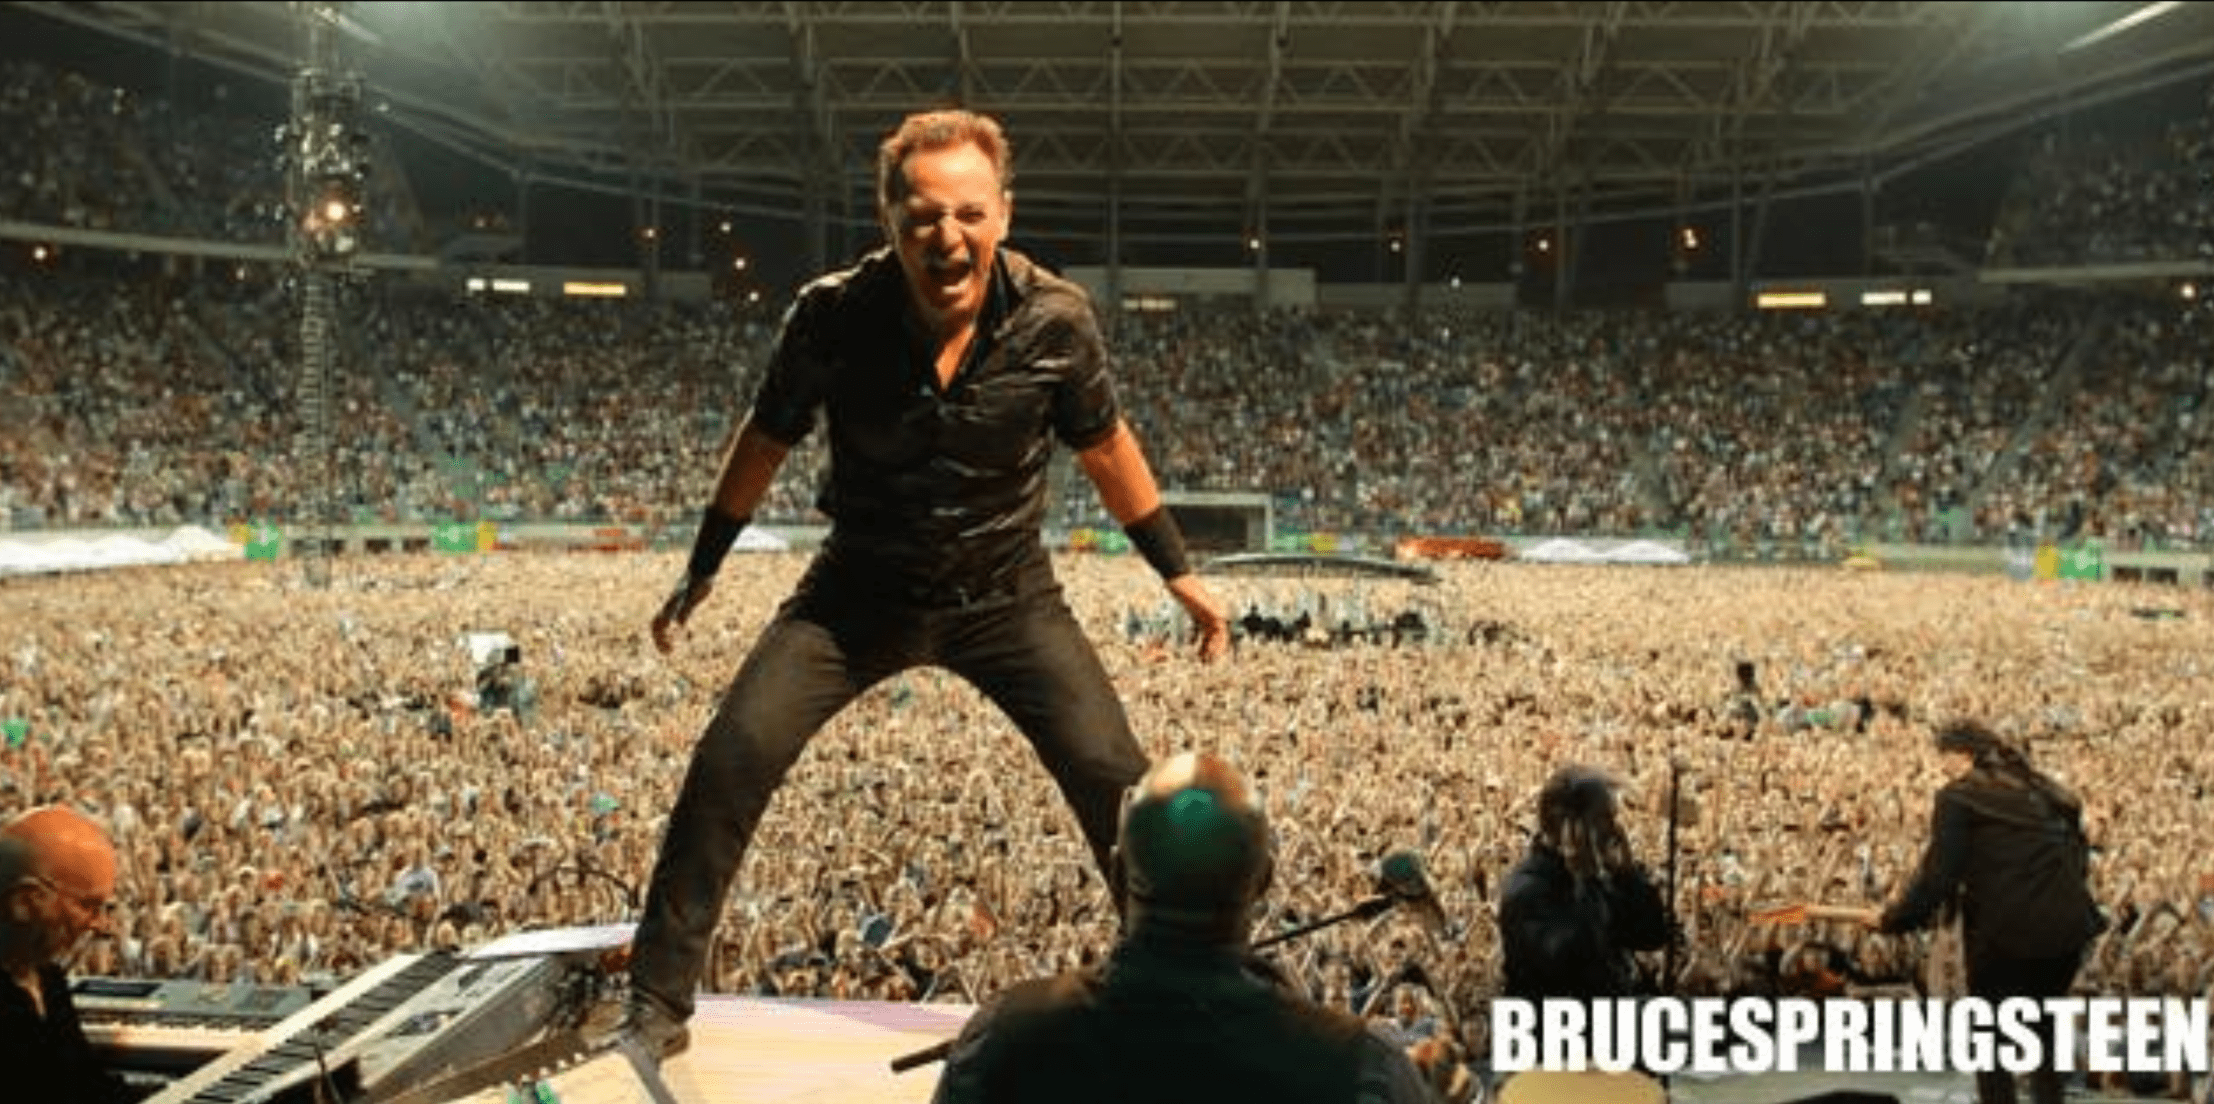 Bruce Springsteen Tour 2020 Usa Bruce Springsteen Confirms He'll Tour With The E Street Band In 2020